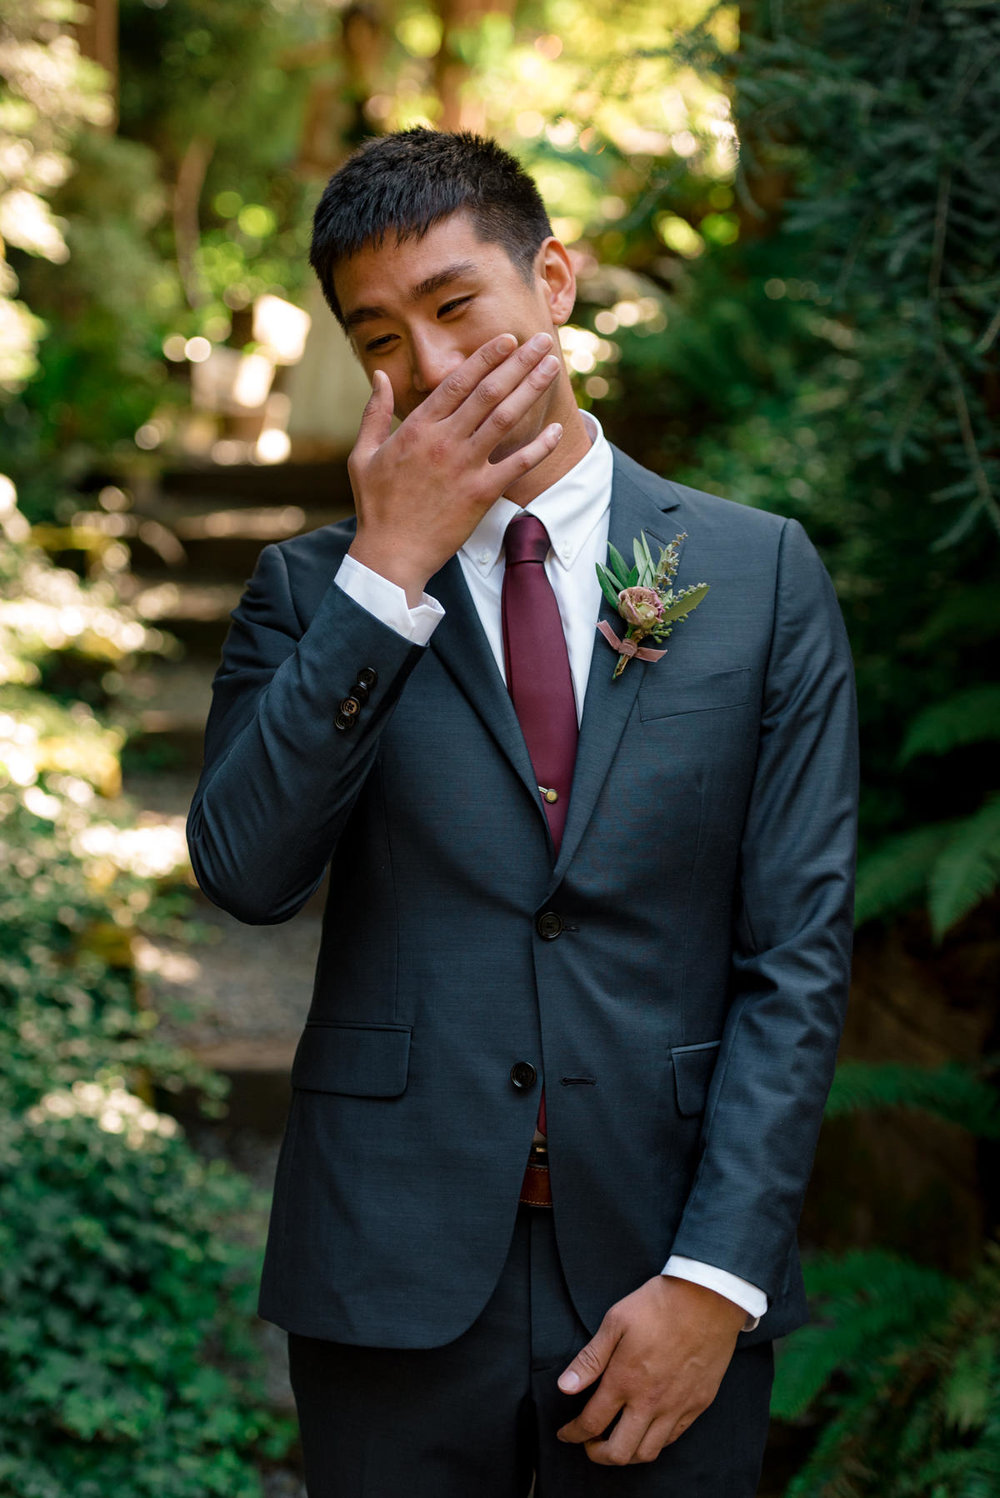 Andrew Tat - Documentary Wedding Photography - JM Cellars - Woodinville, Washington -Tammy & Aaron - 05.jpg